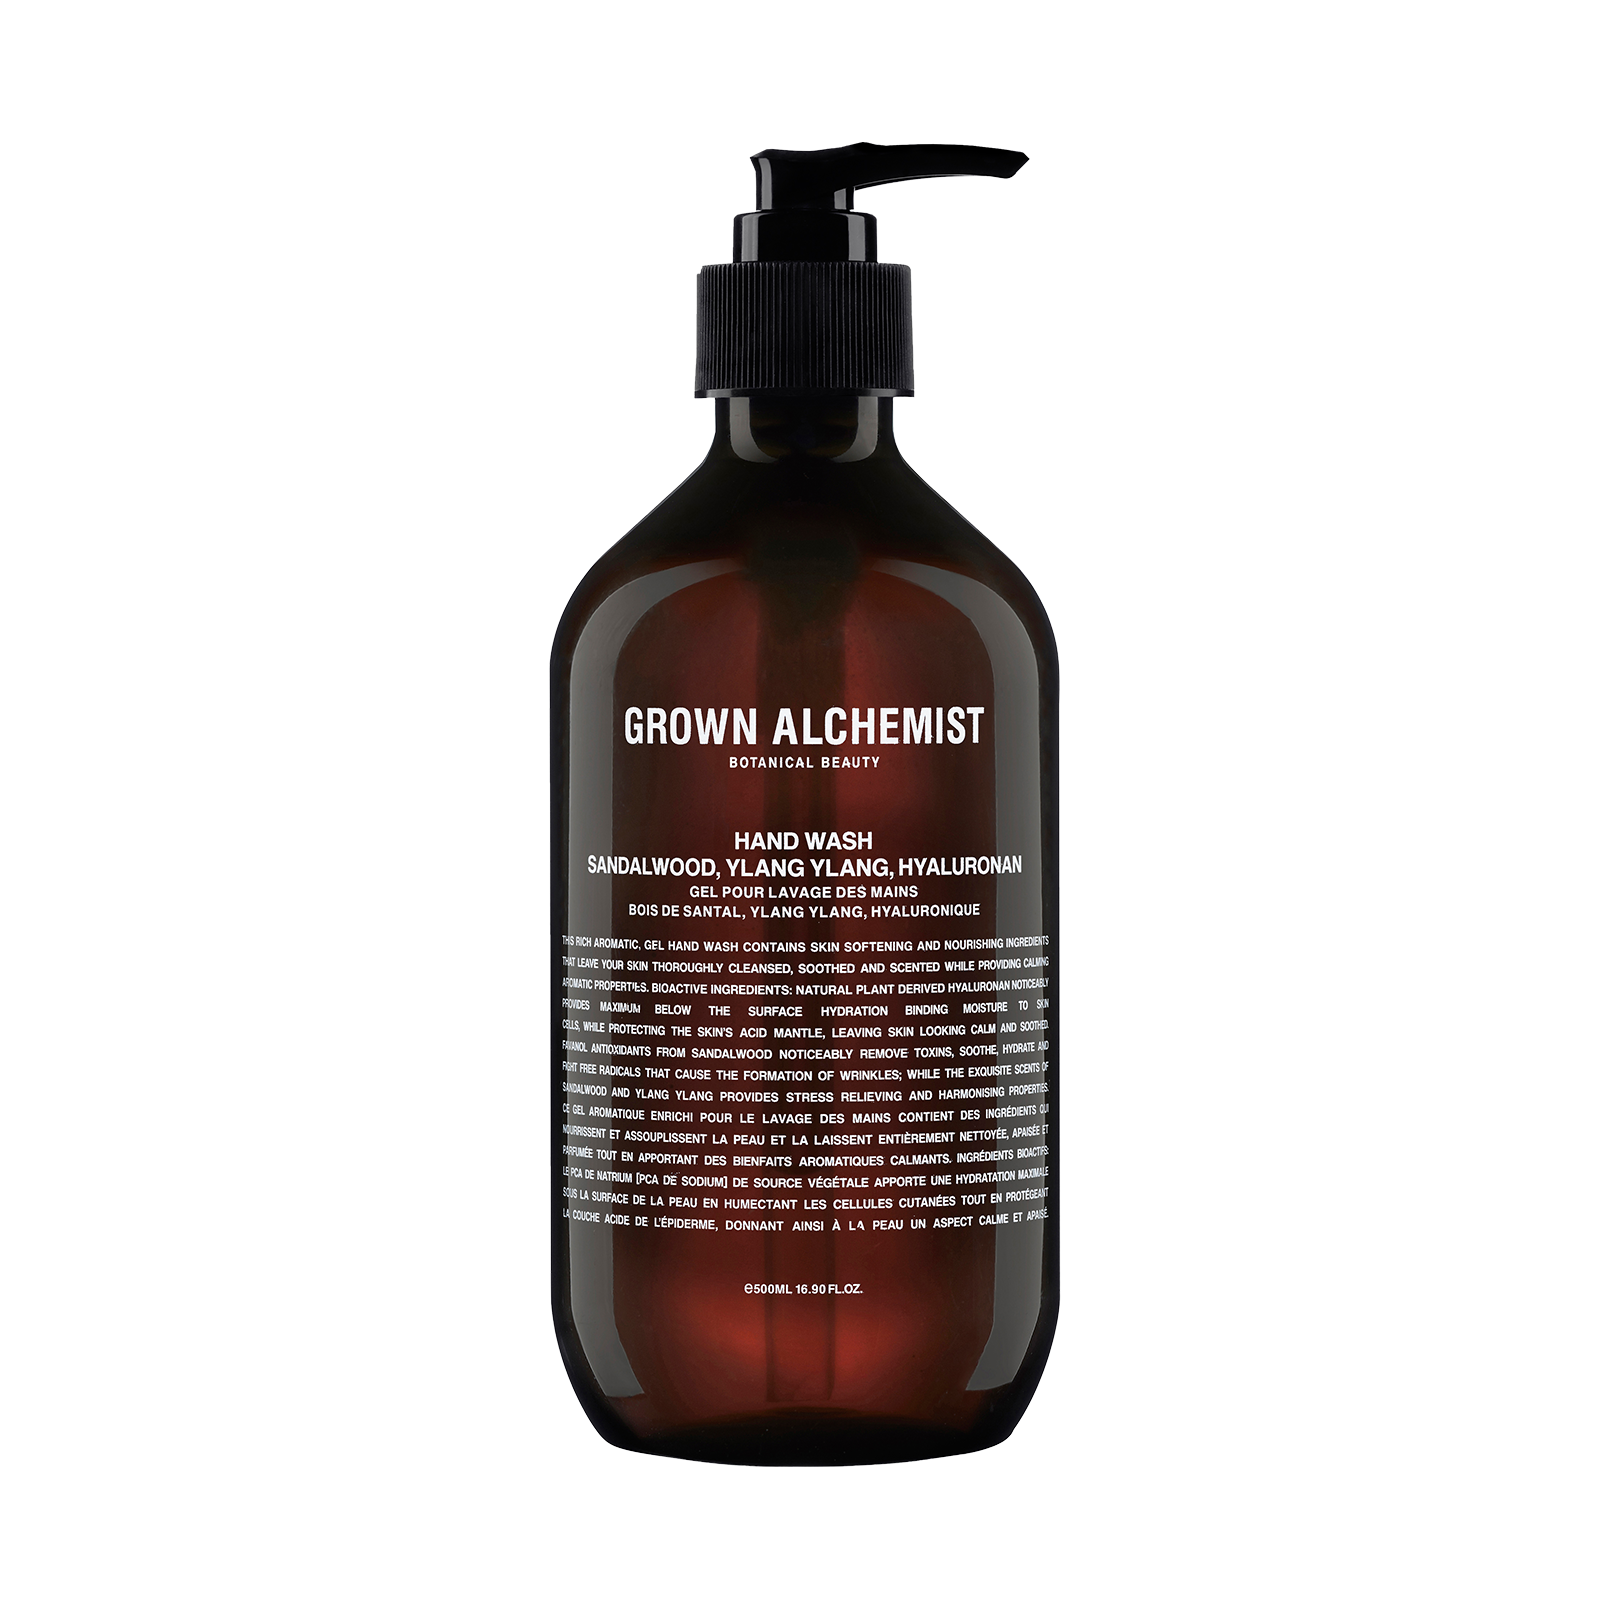 Hand Wash by Grown Alchemist | Nourish Clean Beauty Hong Kong